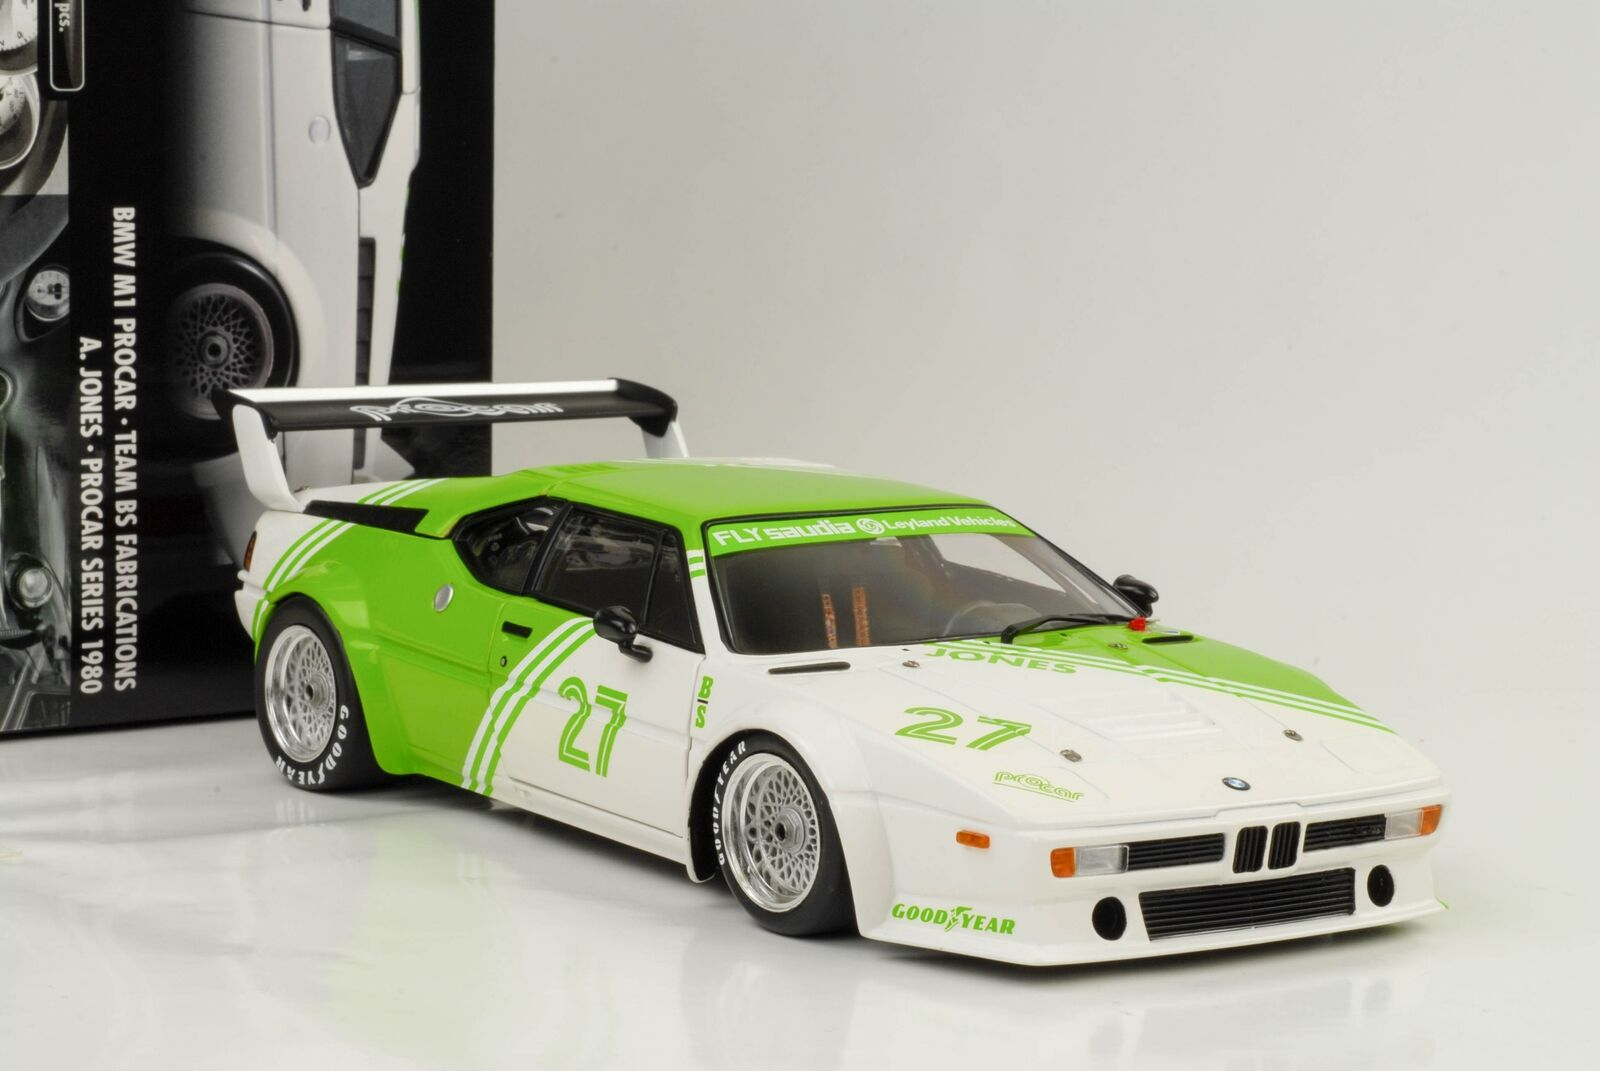 1:18 m1 BMW Procar Team BS Fabrications #27 Jones Voiture Miniature 1:18 Minichamps | Formes élégantes